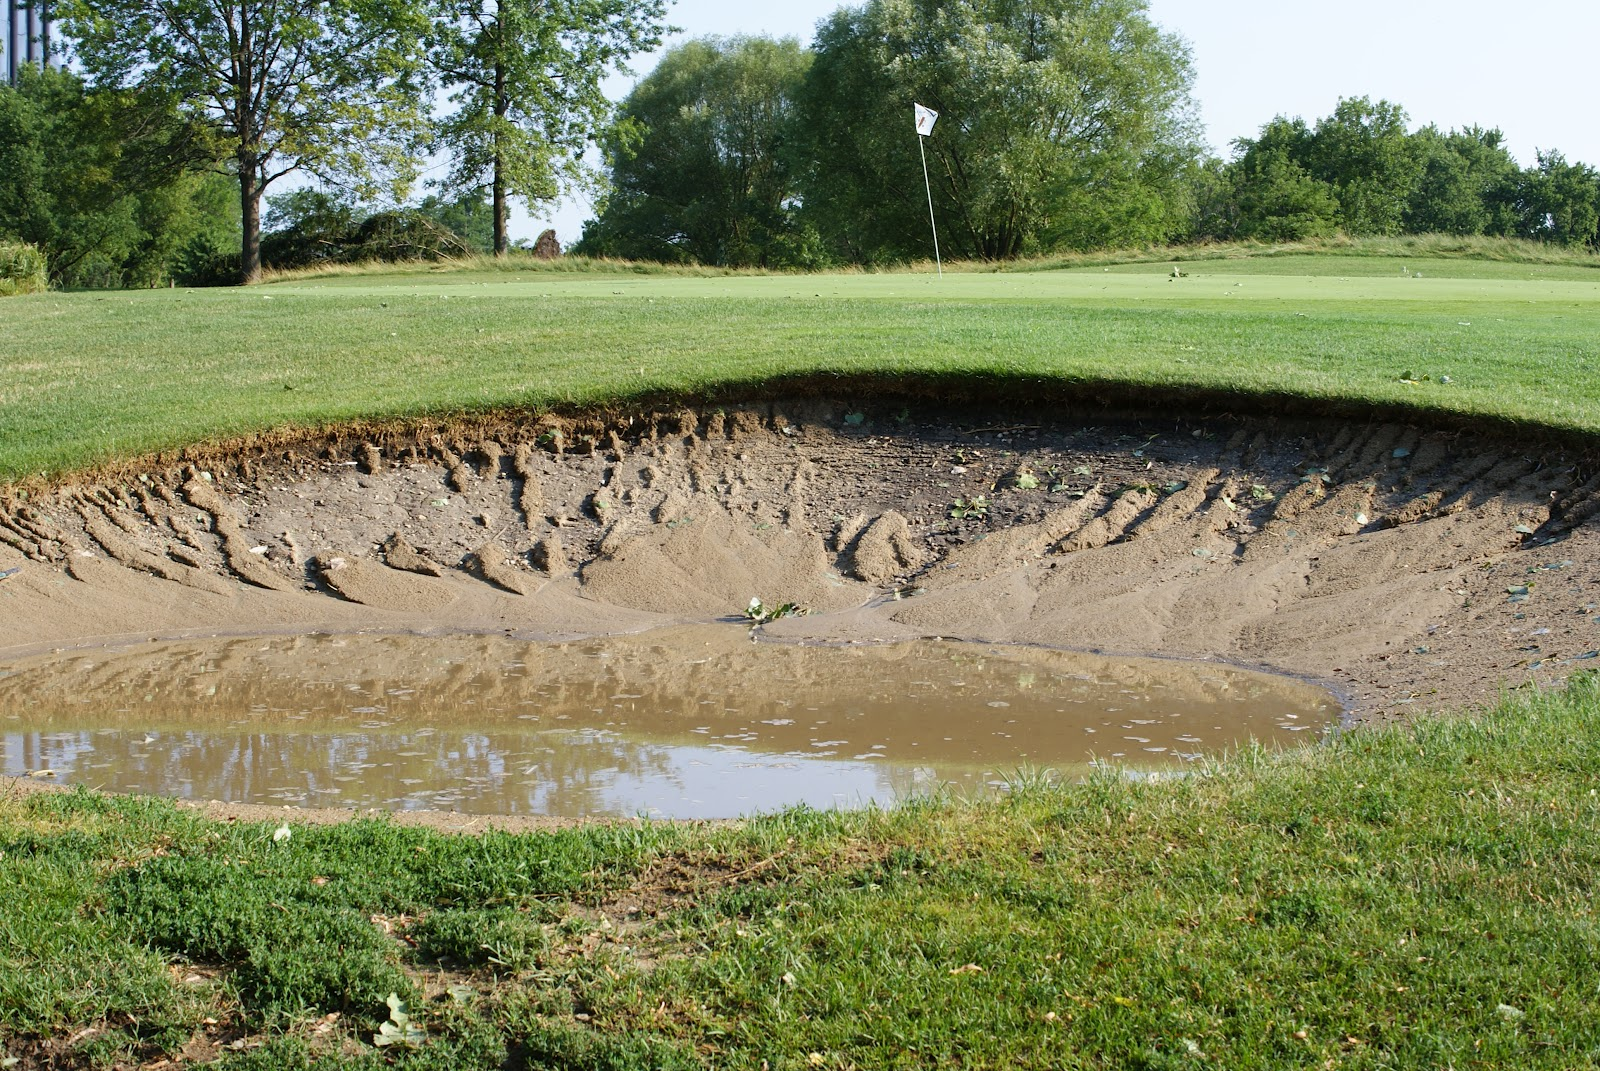 Sugar creek golf course blog week of july 4th brings wind storm and heat wave - Wand trap ...